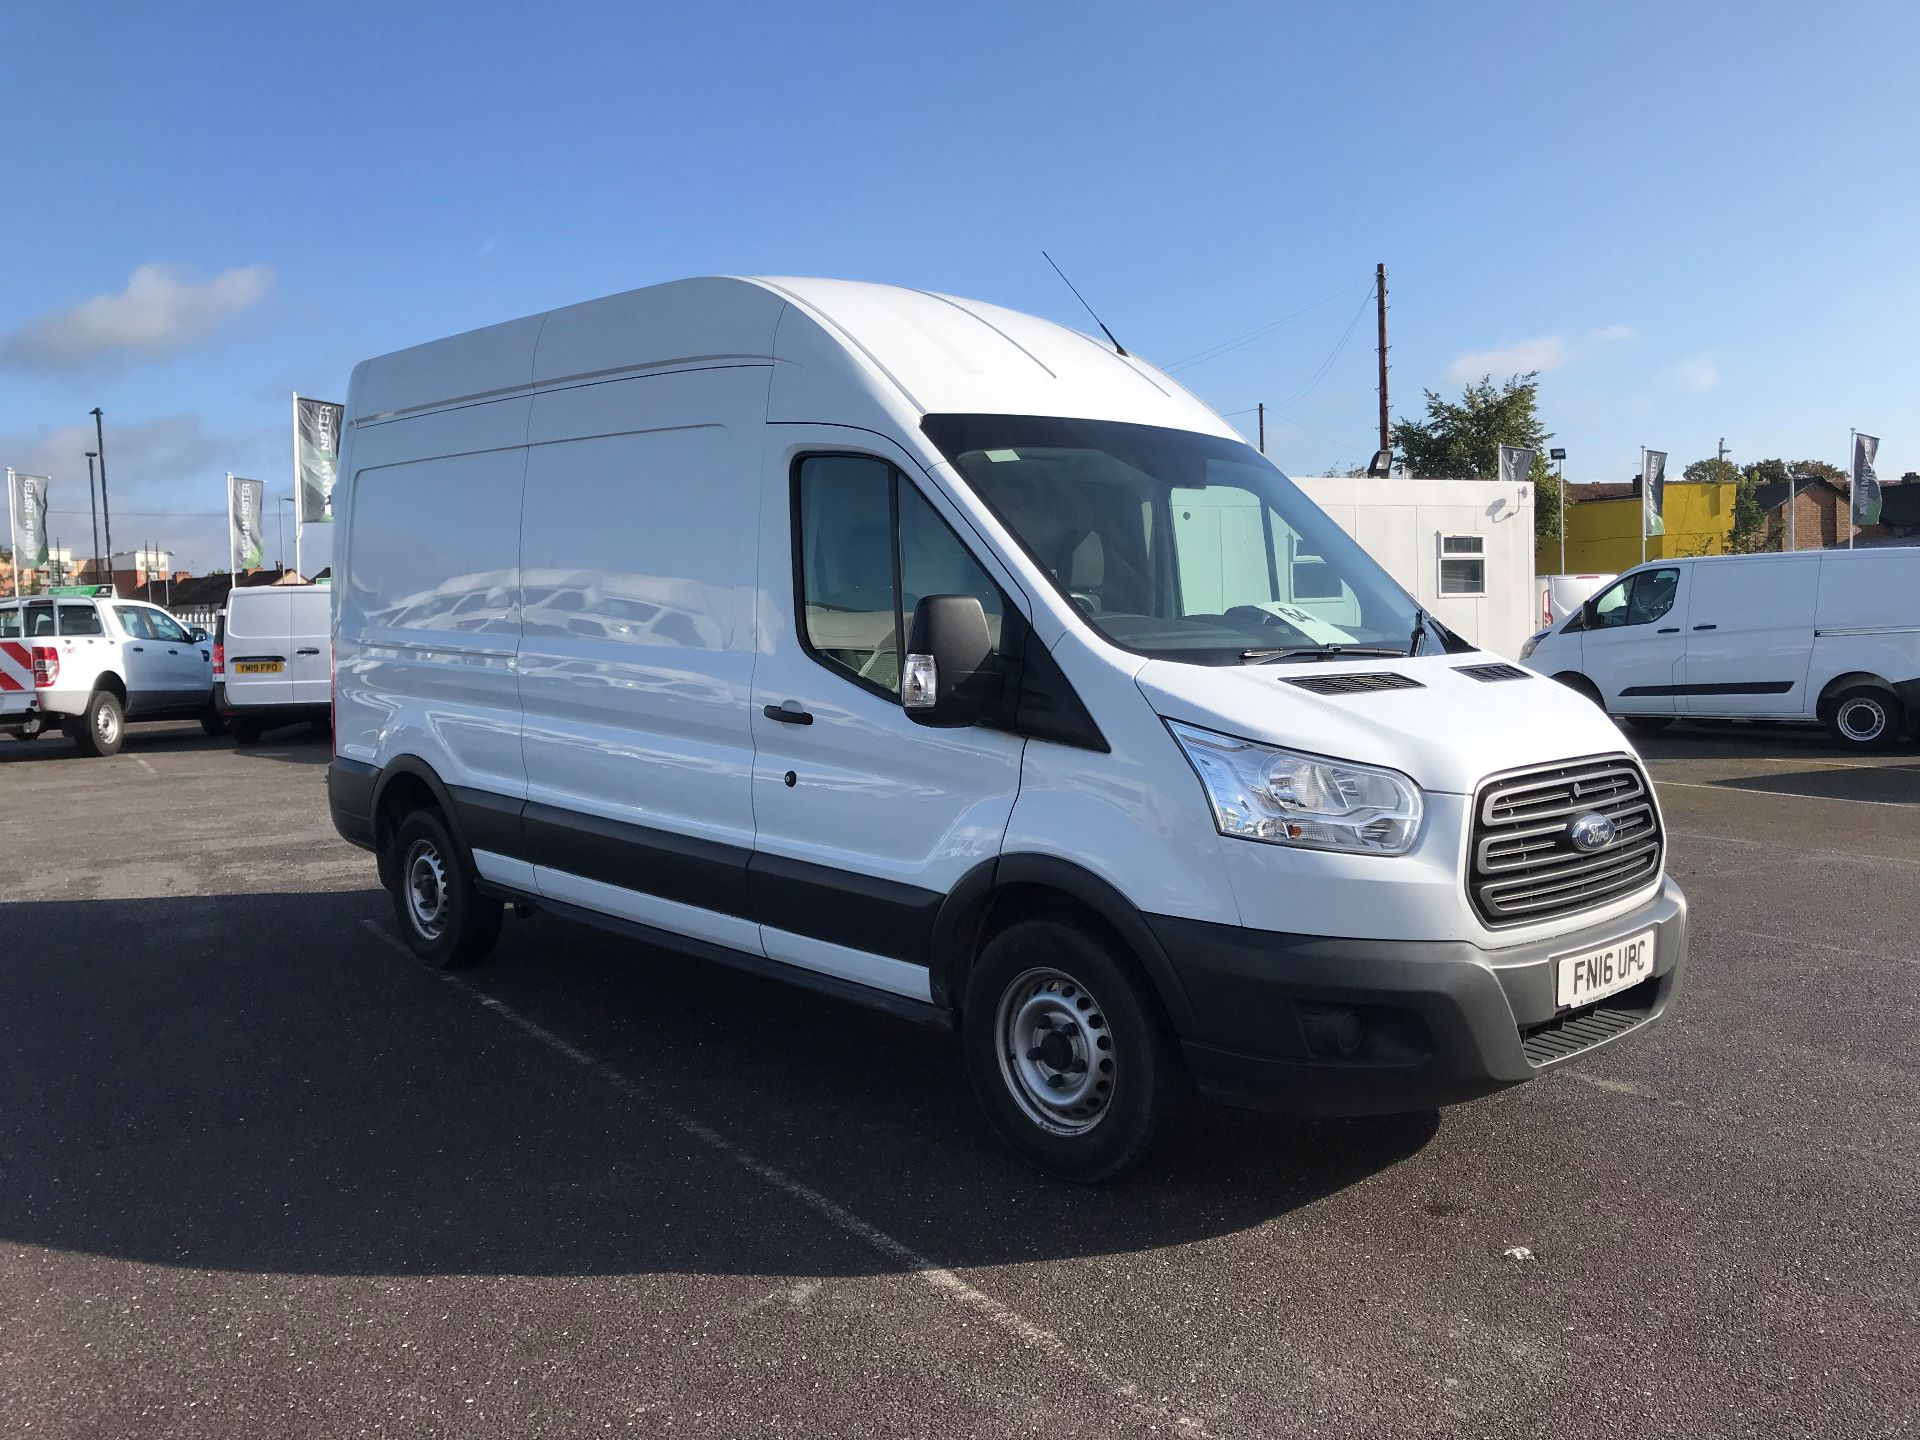 2016 Ford Transit  350 L3 H3 VAN 125PS EURO 5 *CONDITION REFLECTED IN PRICE* (FN16UPC)